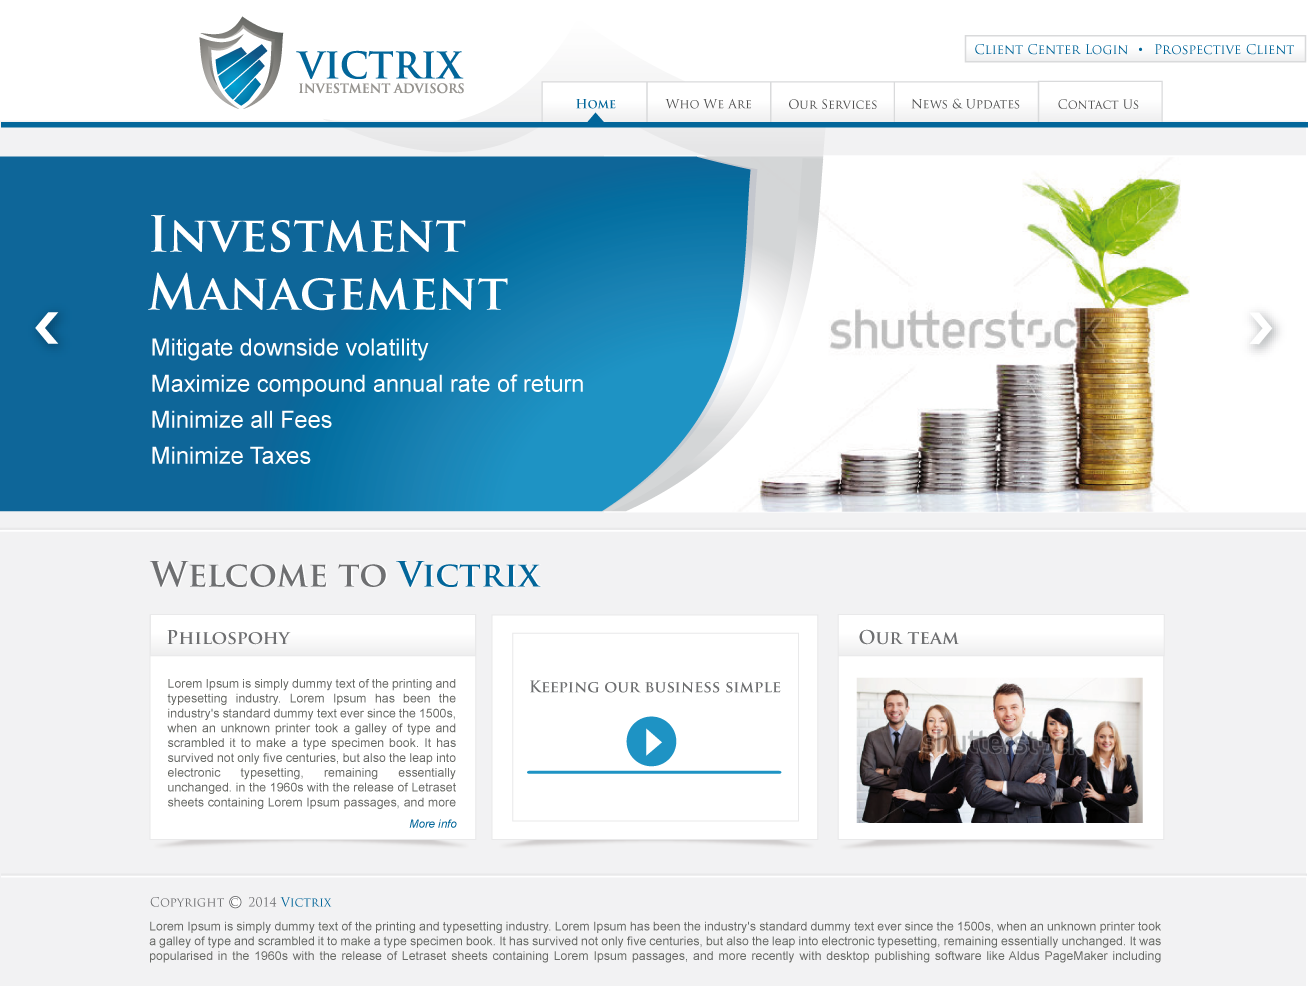 Web Page Design by lovag - Entry No. 9 in the Web Page Design Contest Captivating Web Page Design for Victrix Investment Advisors.